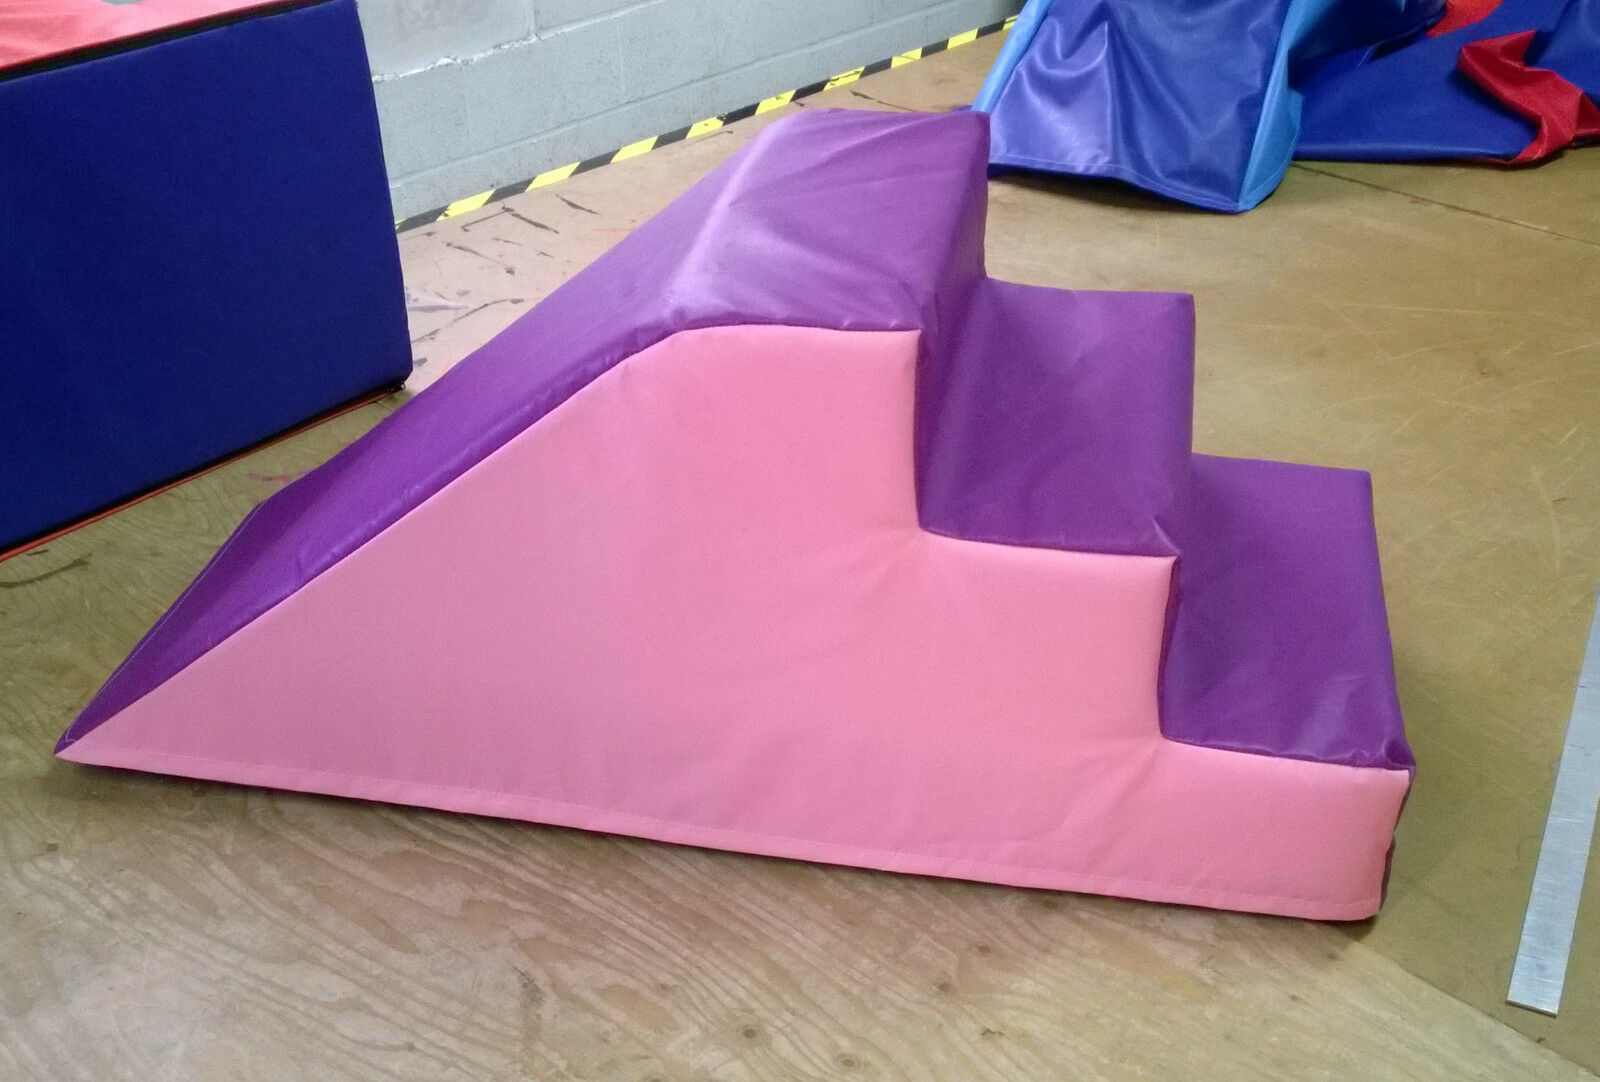 Light Pink   Purple  Soft Play Step & Slide  120cm x 50cm x 50cm FREE POST